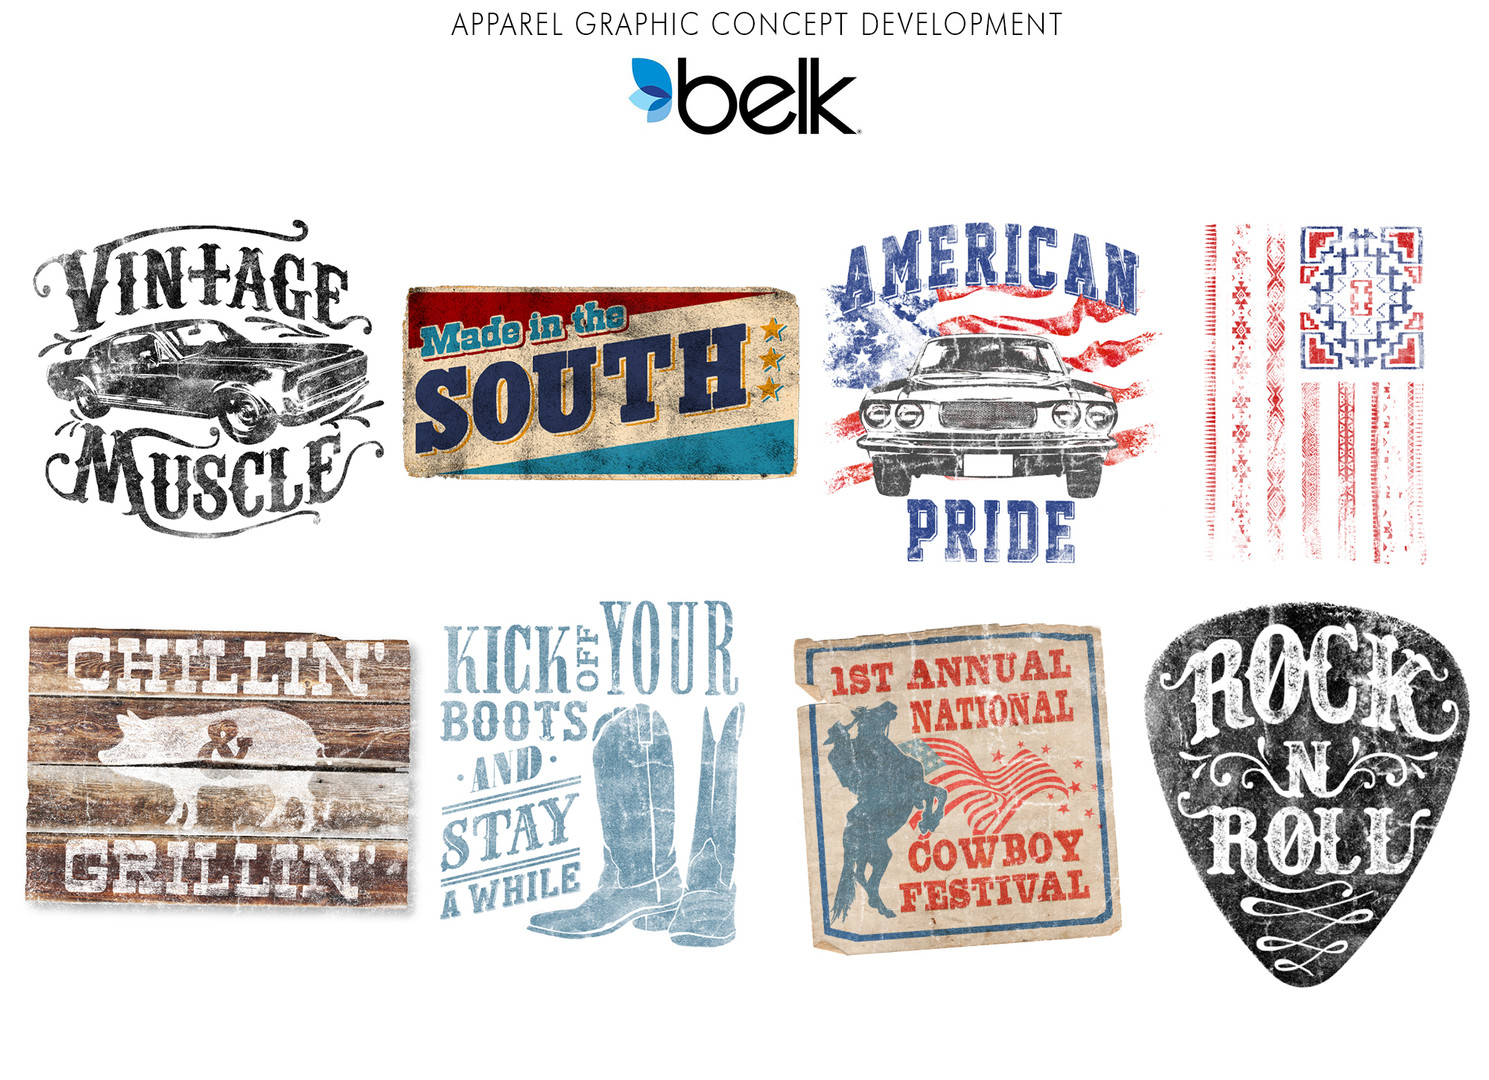 Apparel graphic concept development for Belk.